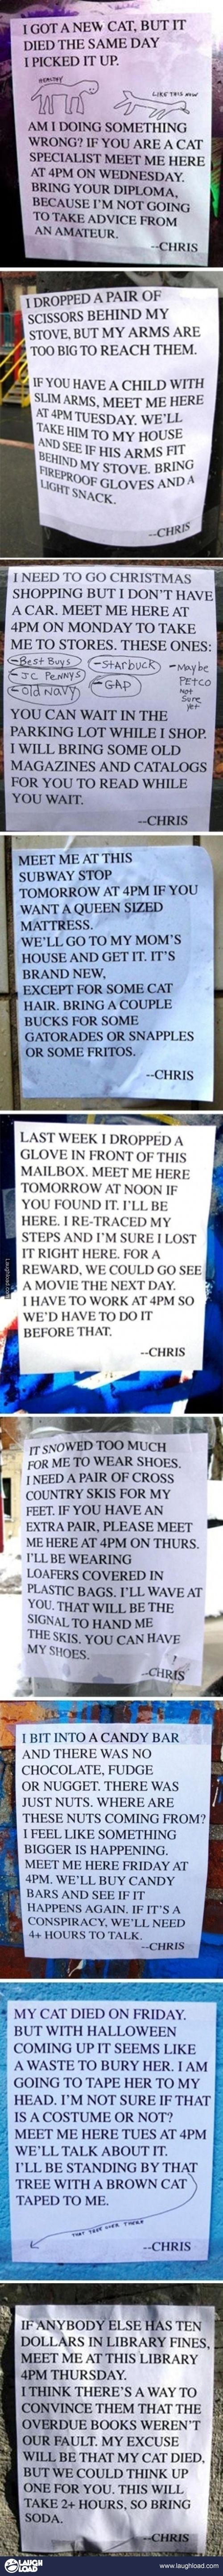 """Notes from """"Chris"""""""